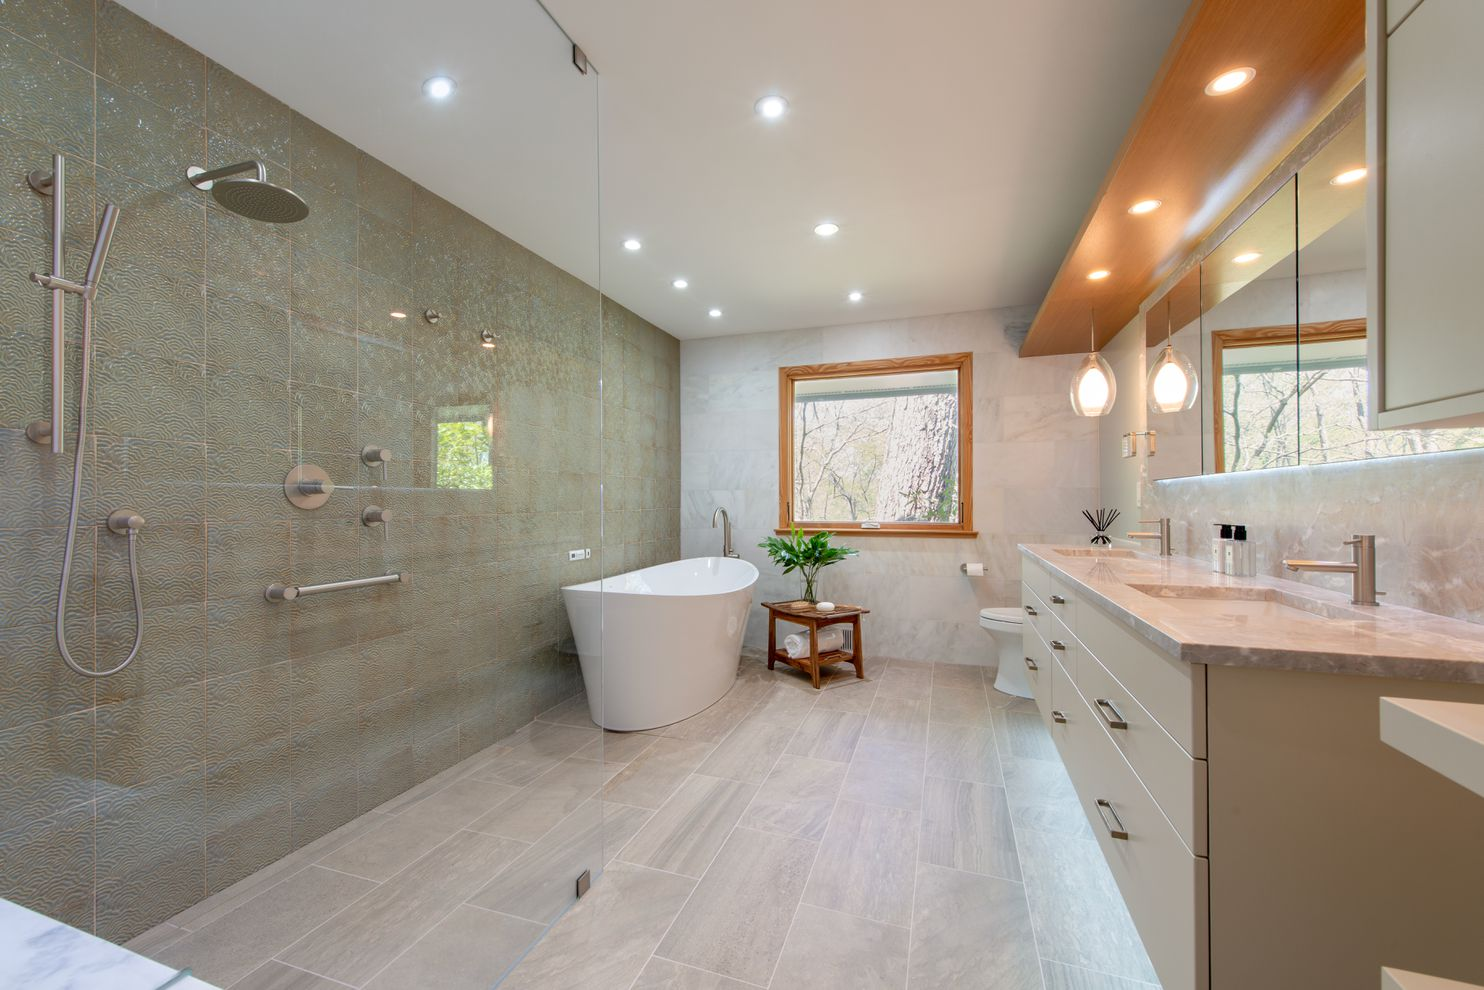 A Closer Look At Bathroom Design Trends For 2020 The Washington Post